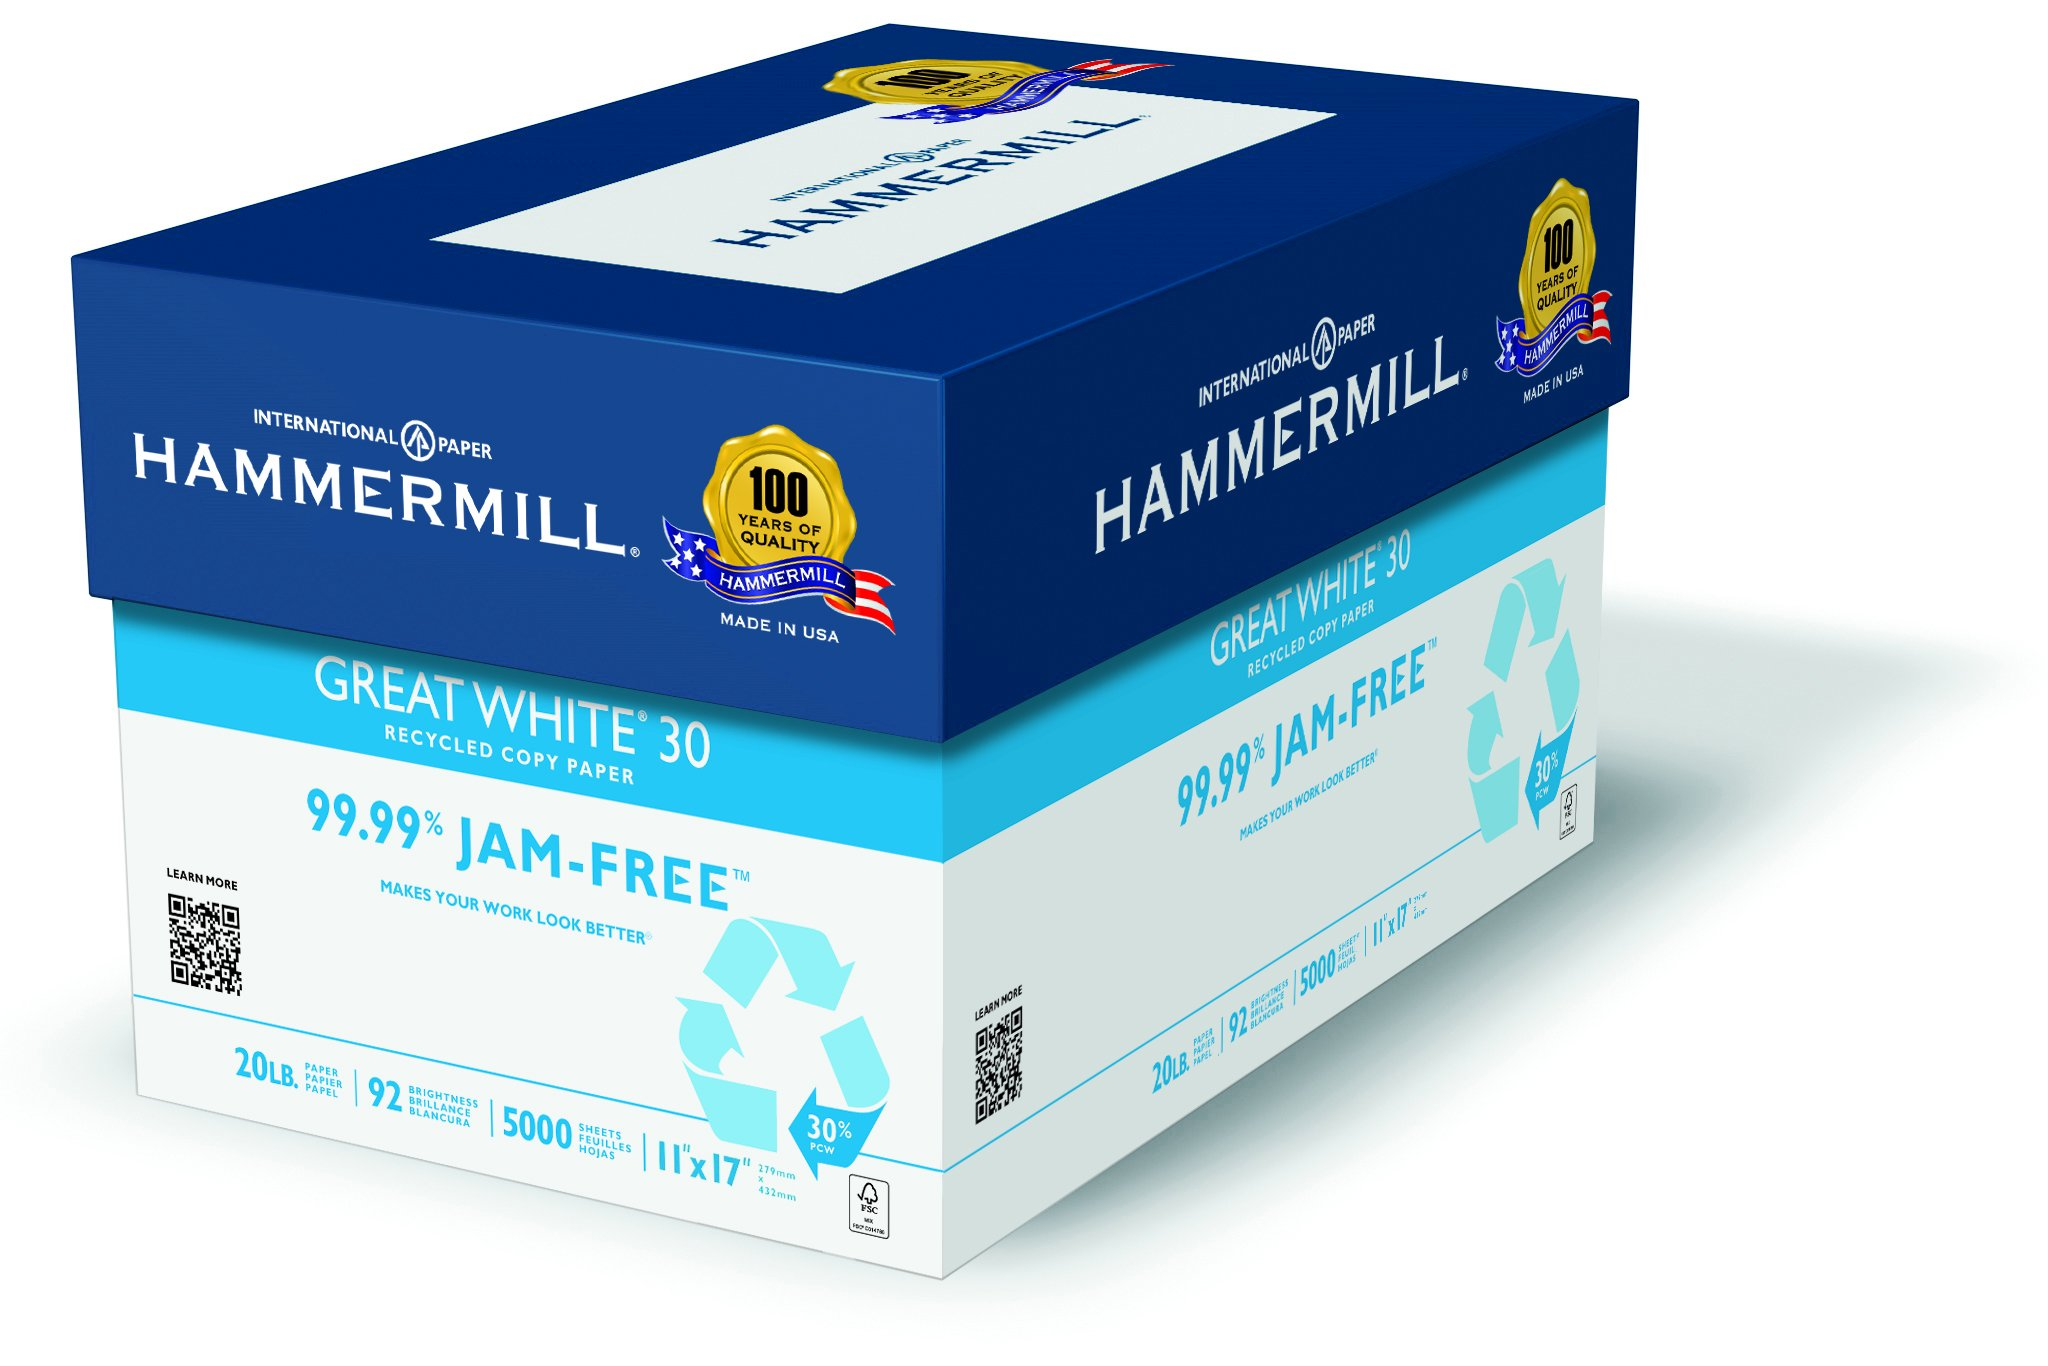 Hammermill Paper, Great White Copy Paper 30% Recycled, 20lb, 11 x 17, Ledger, 92 Bright, 2500 Sheets / 5 Ream Case, (086750C), Made In The USA